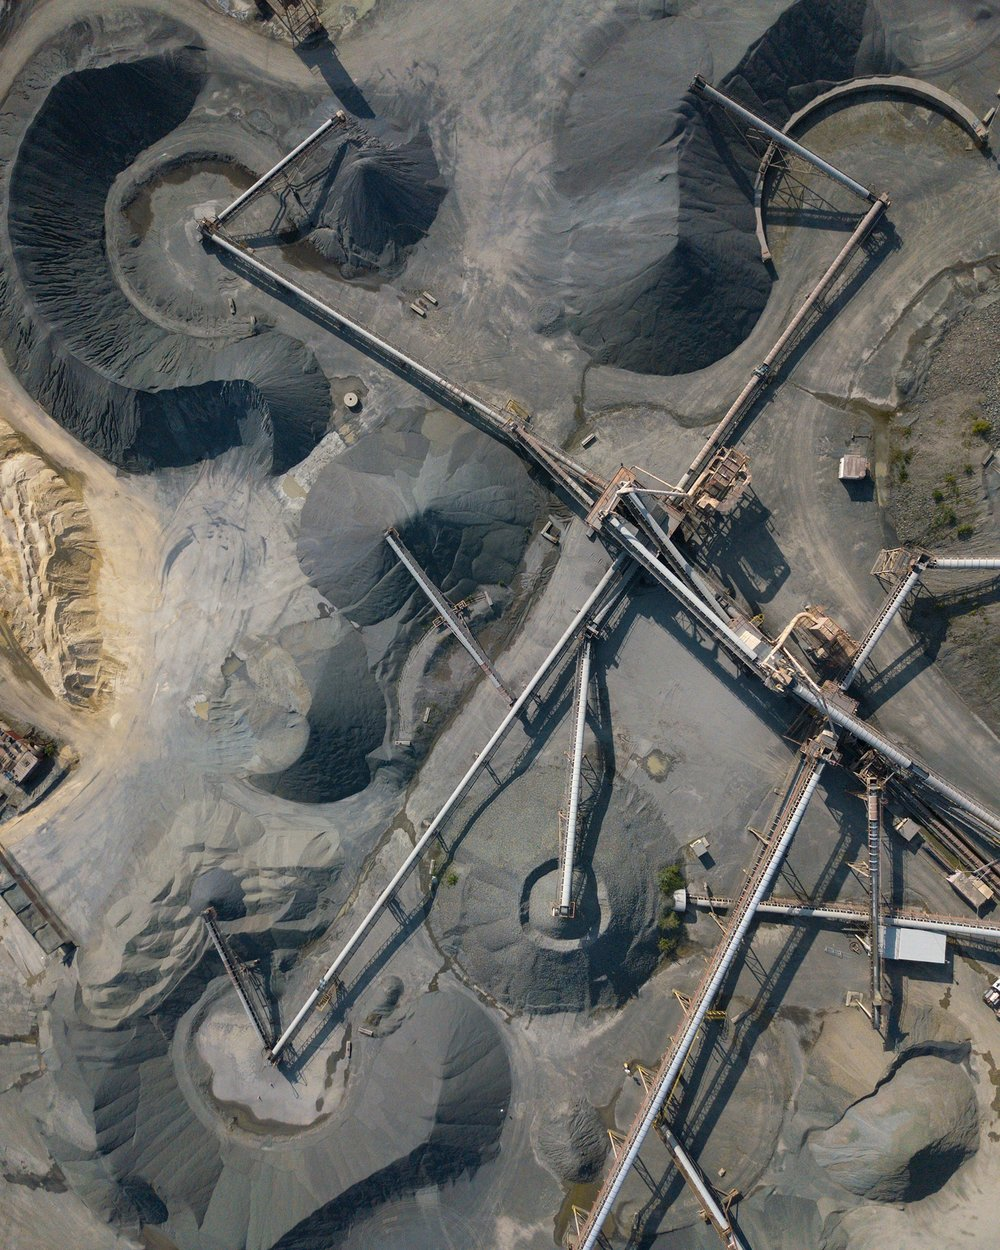 Weldon Companies stone quarry, New Jersey. © Mike Stillwell